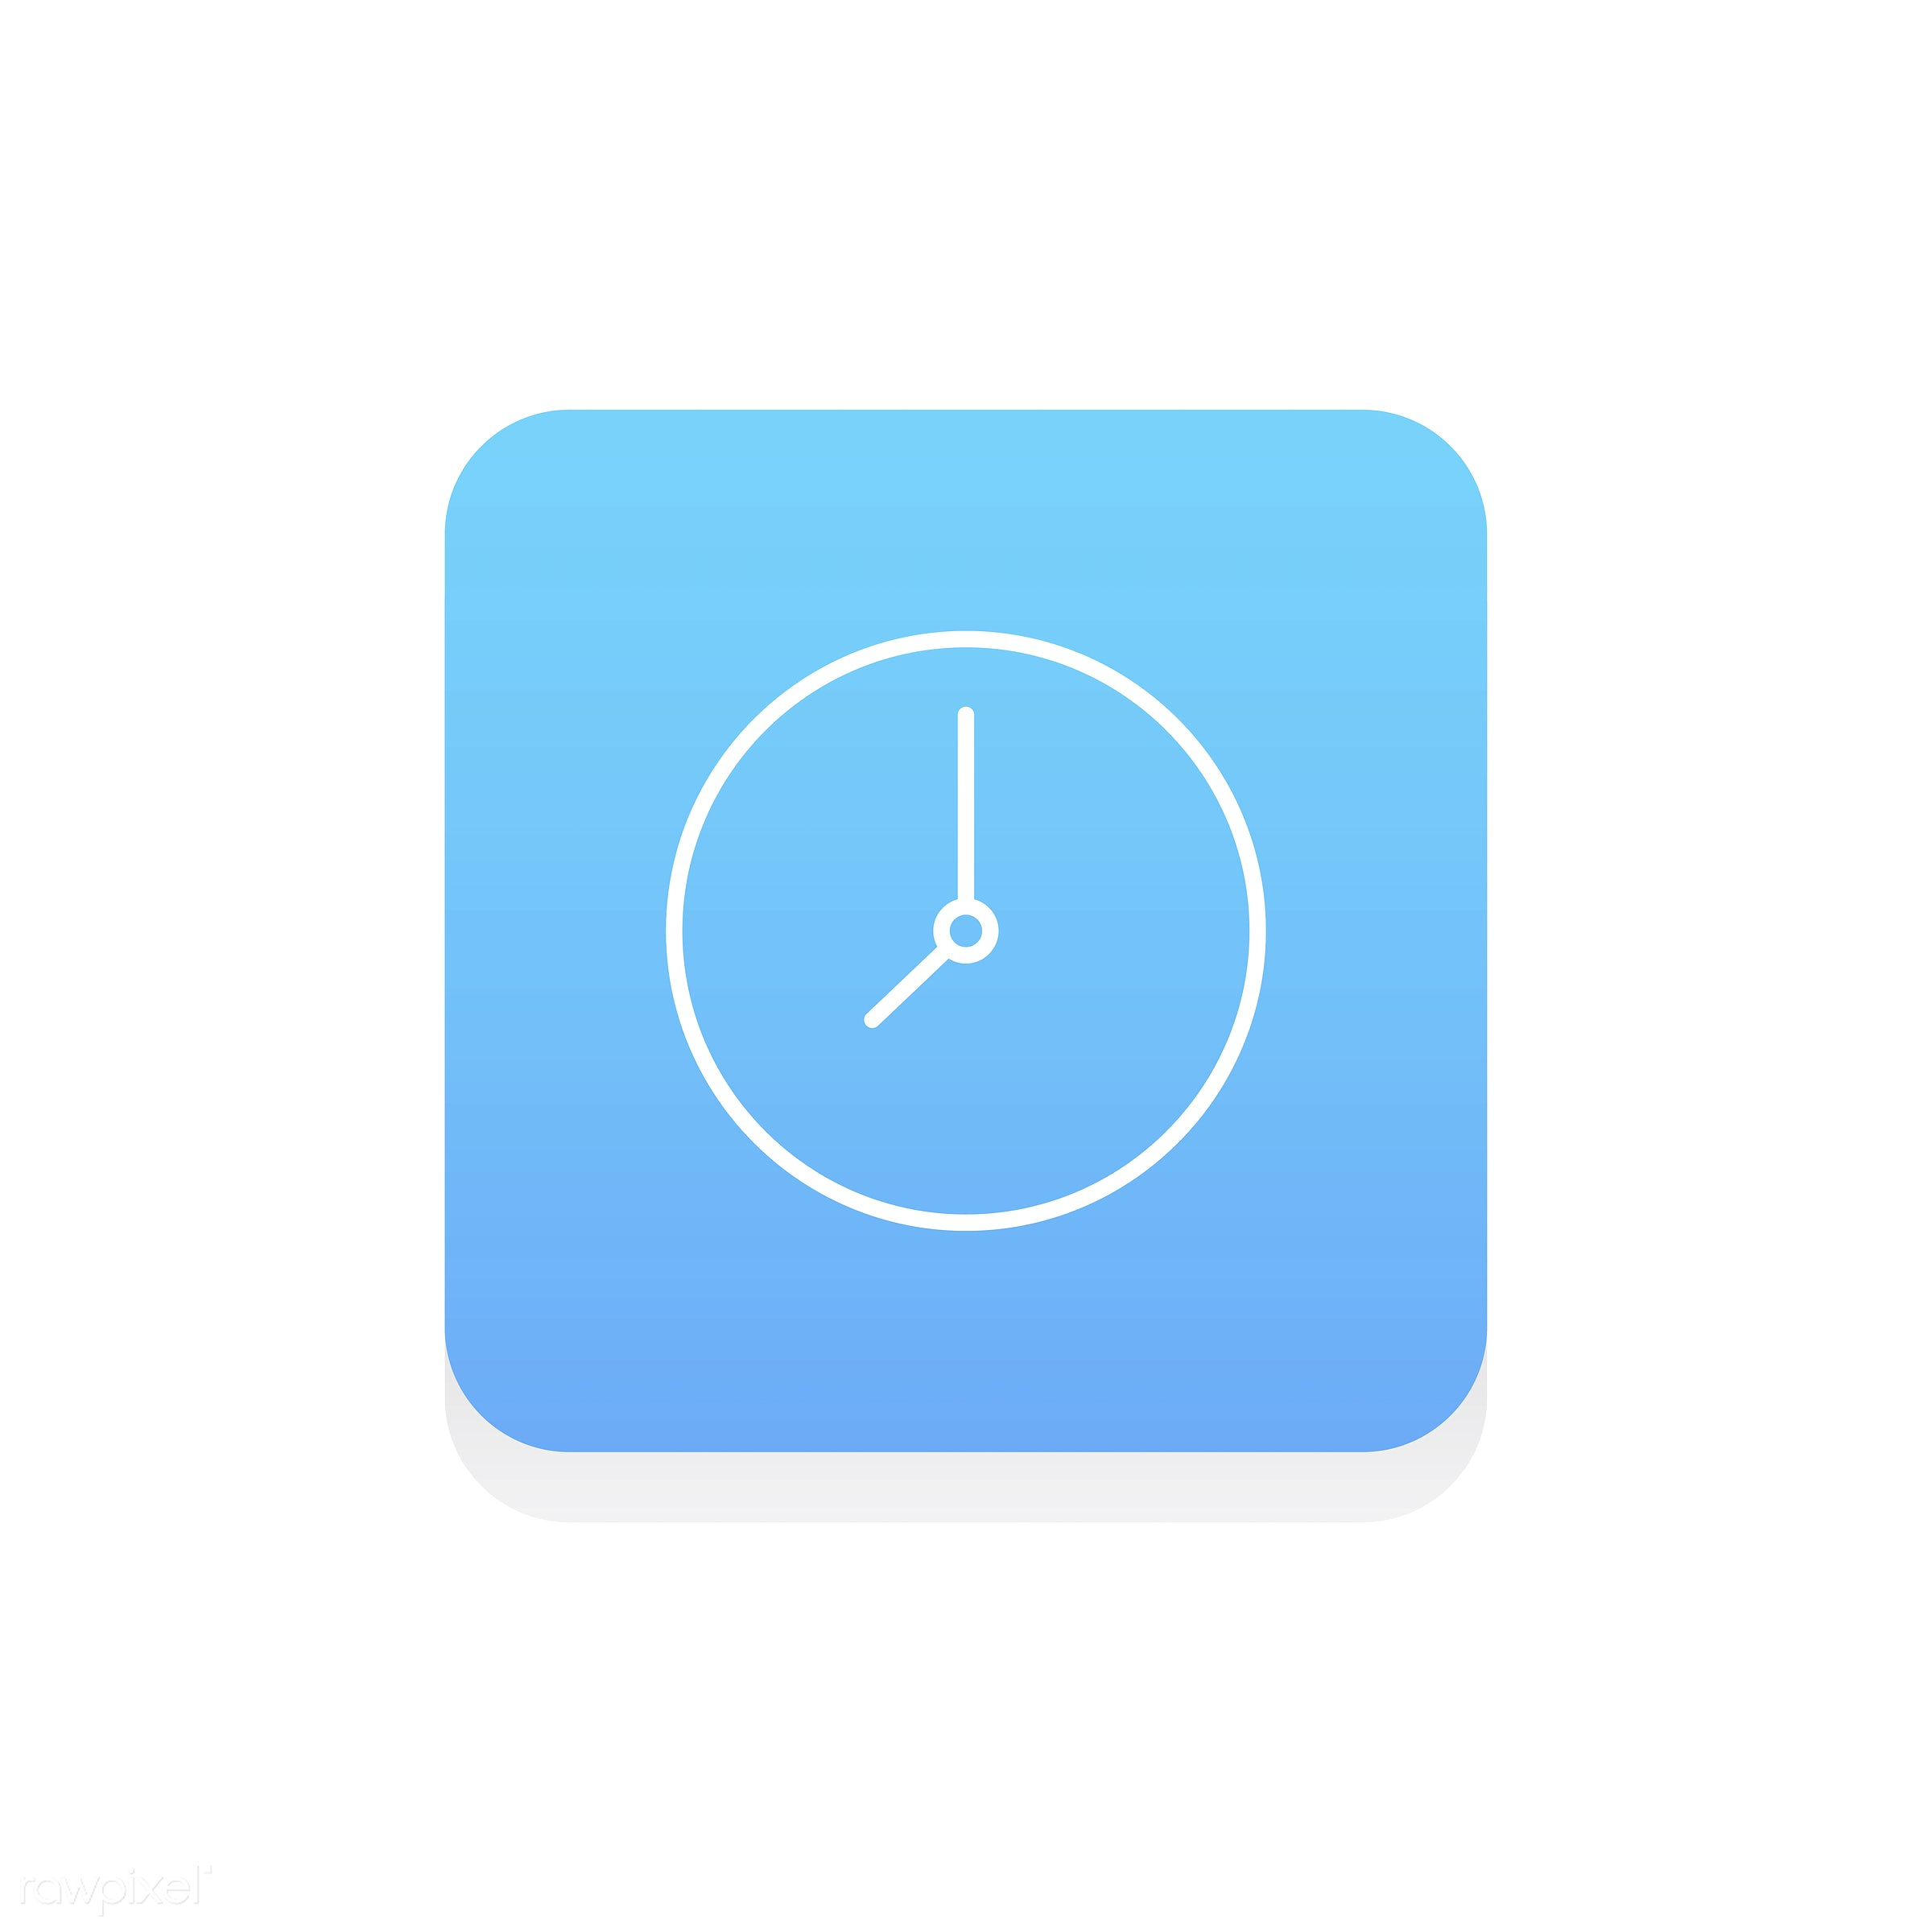 Vector of clock icon - design, flat, graphic, icon, illustration, isolated, layout, style, symbol, vector, web, website,...